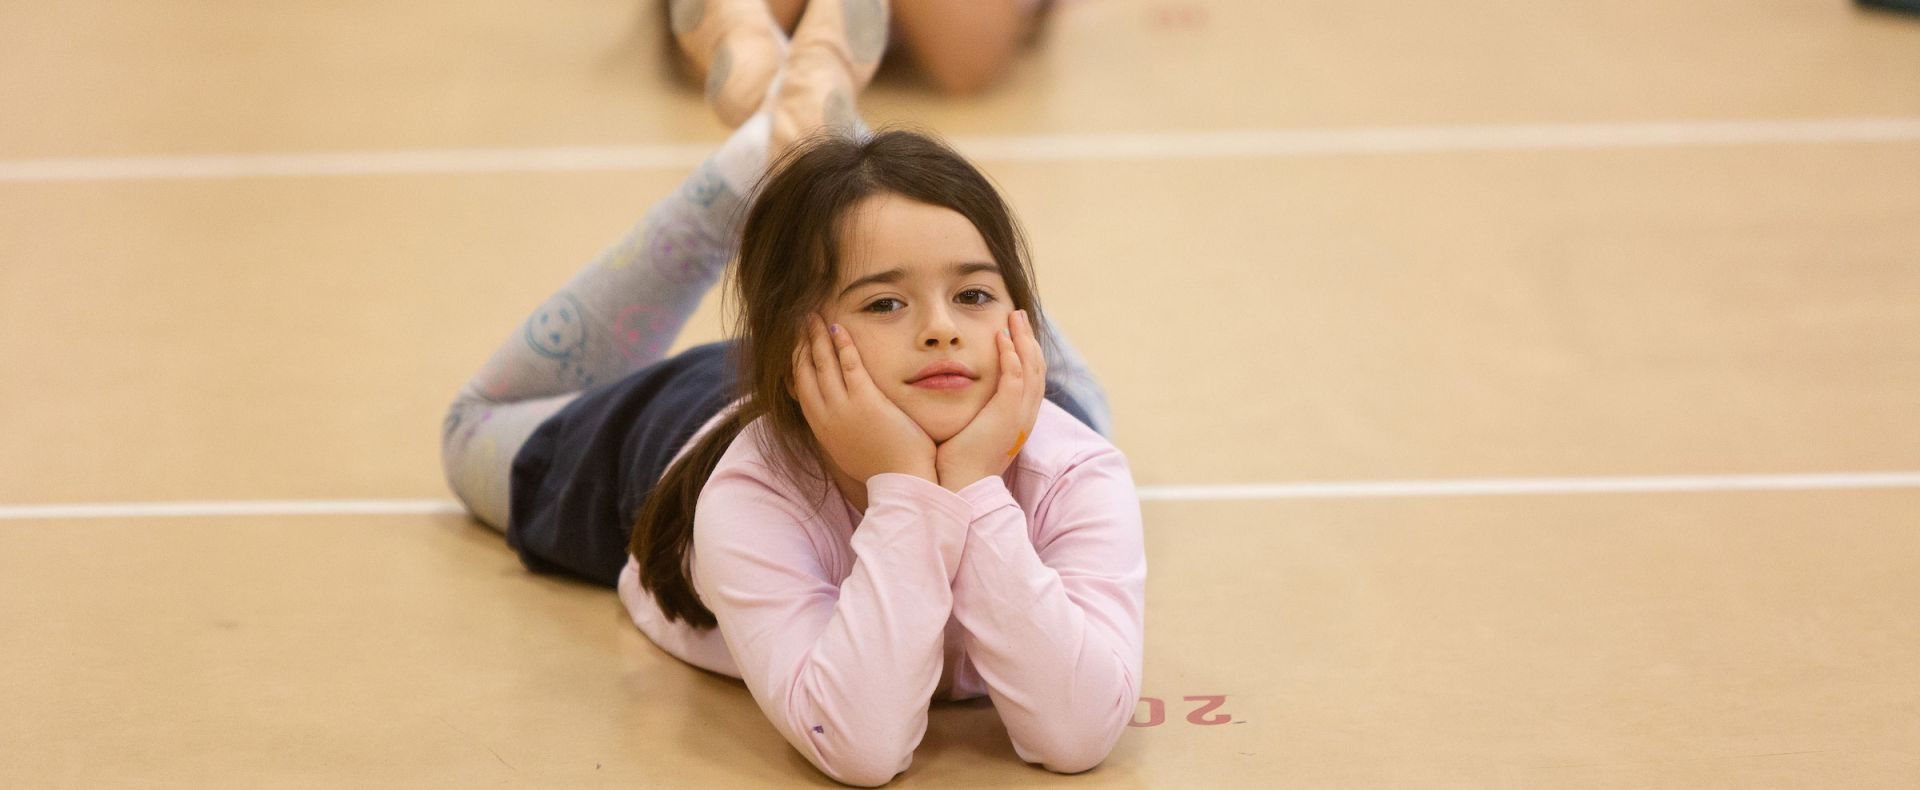 We offer numerous music, dance, and drama classes with the option for private and group music lessons.